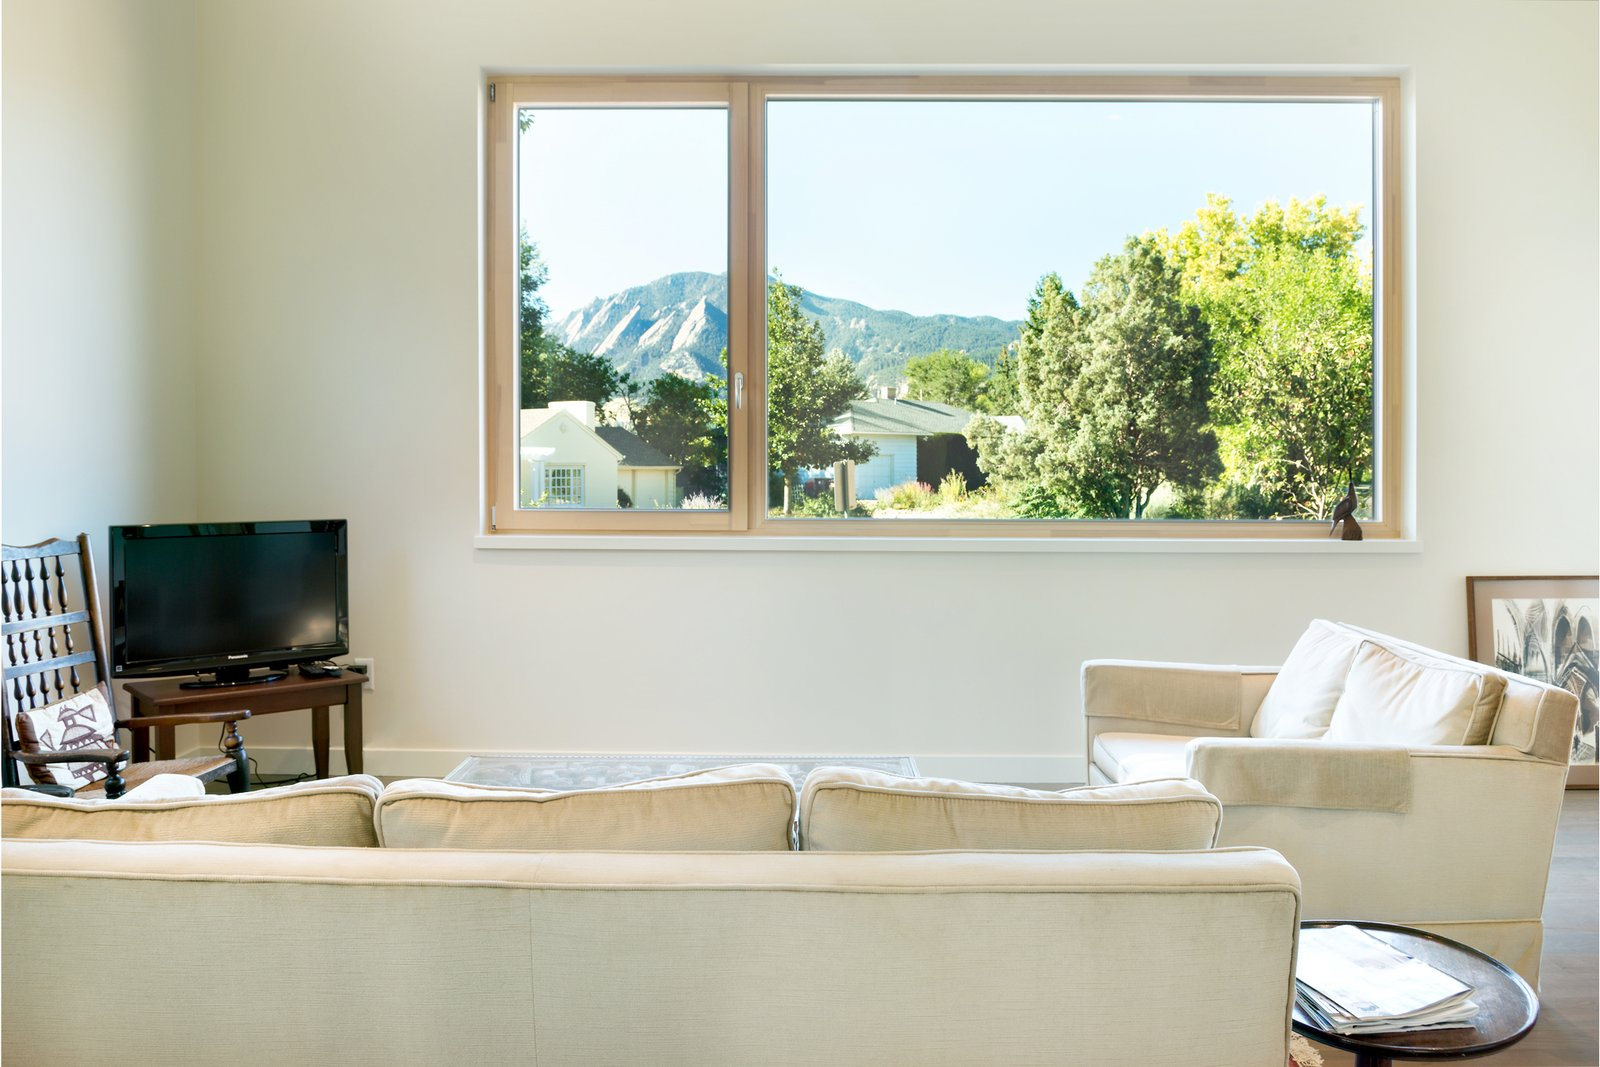 Zola Tilt & Turn and Fixed Window - Zola Thermo Clad  Tilt & Turn windows can be very large, with each sash up to five and a half feet wide. Zola Tilt & Turn windows have a multi-point locking mechanism providing safety and superb air sealing.  Sunset